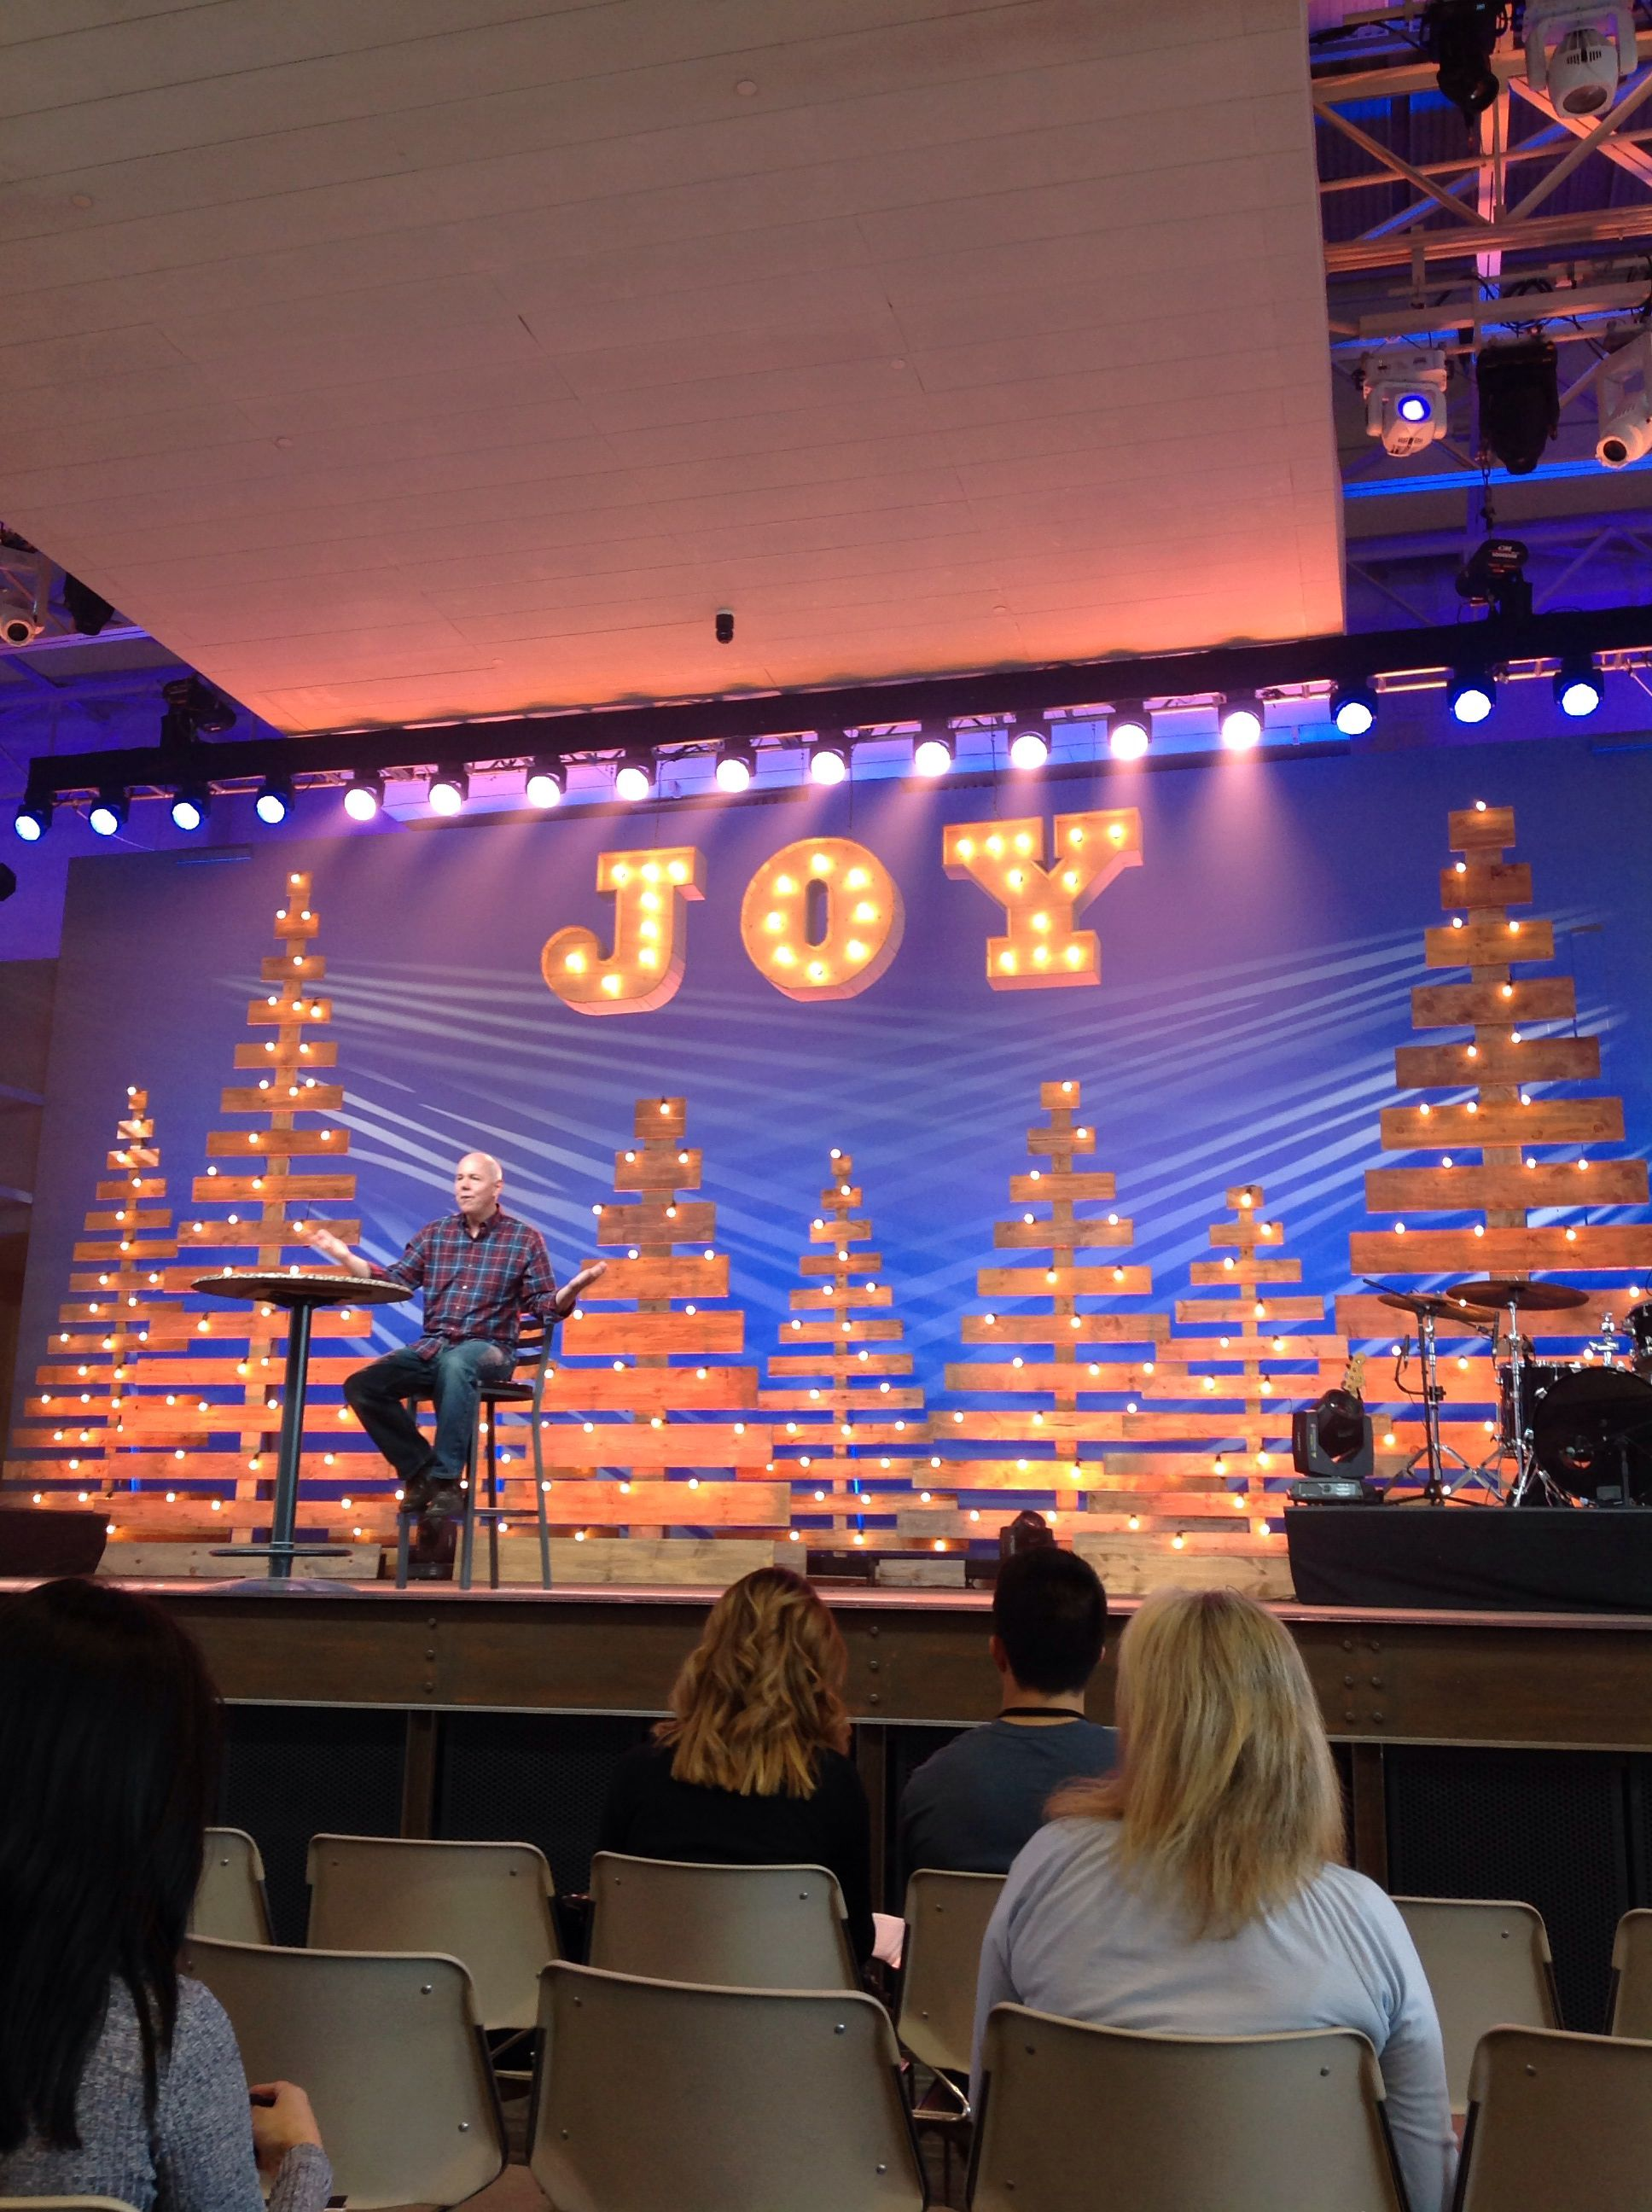 Pastor Tom Halladay Teaching Us About Joy During The Christmas